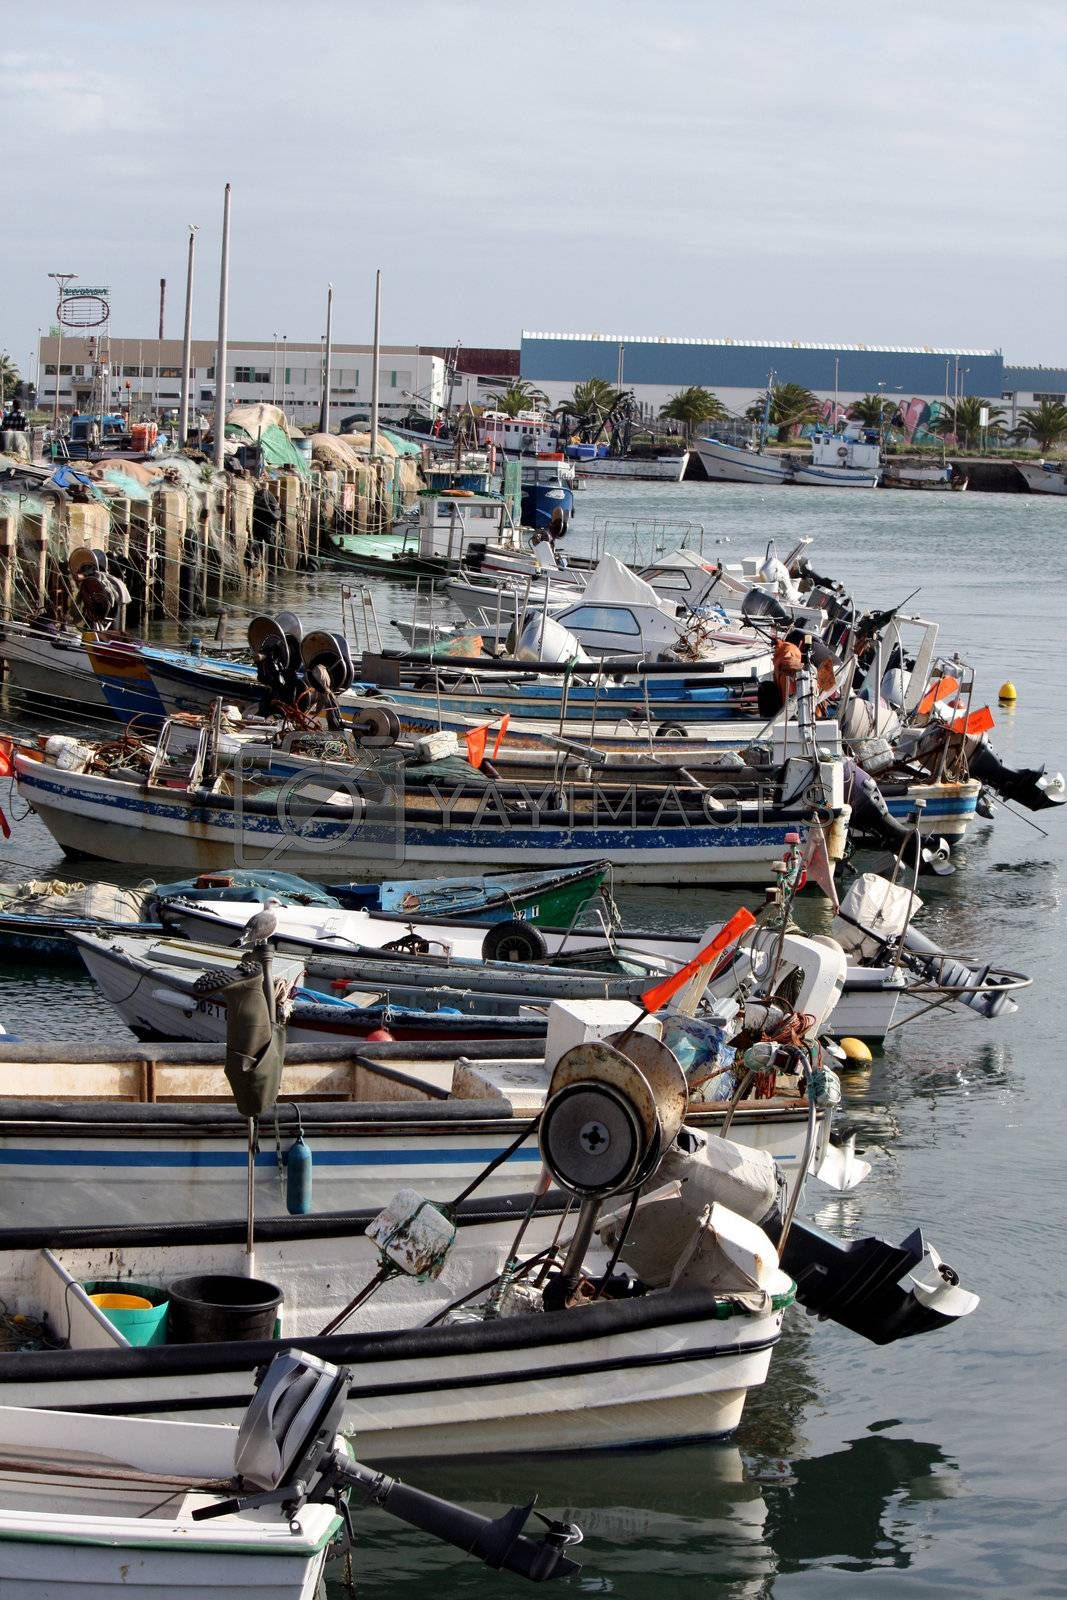 Many anchored small traditional fishing boats on the city of Olh�o, Portugal.